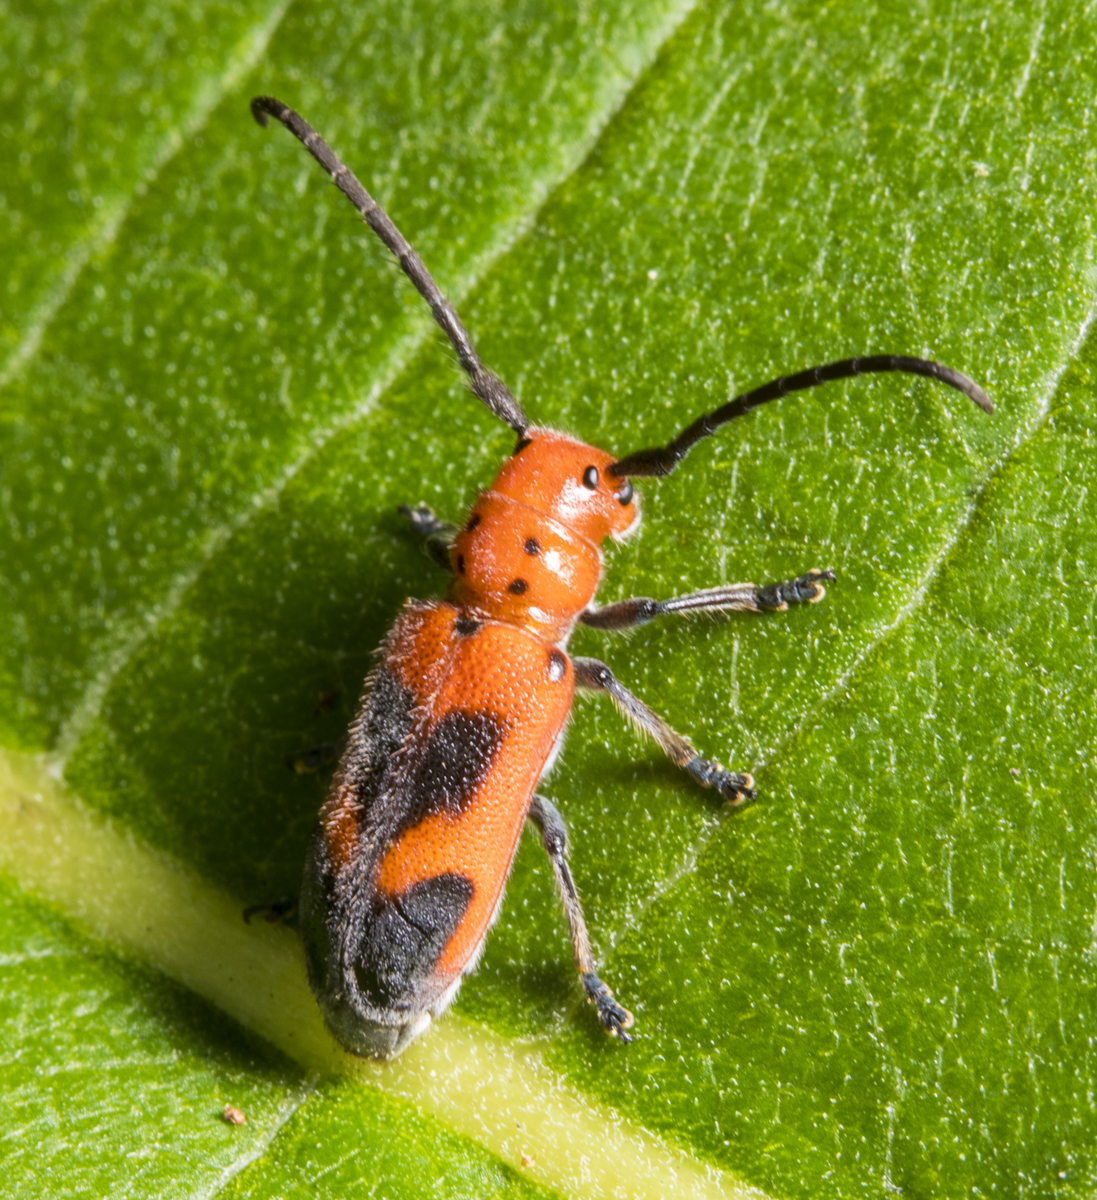 Blackened milkweed beetle showing pattern on dorsal surface?